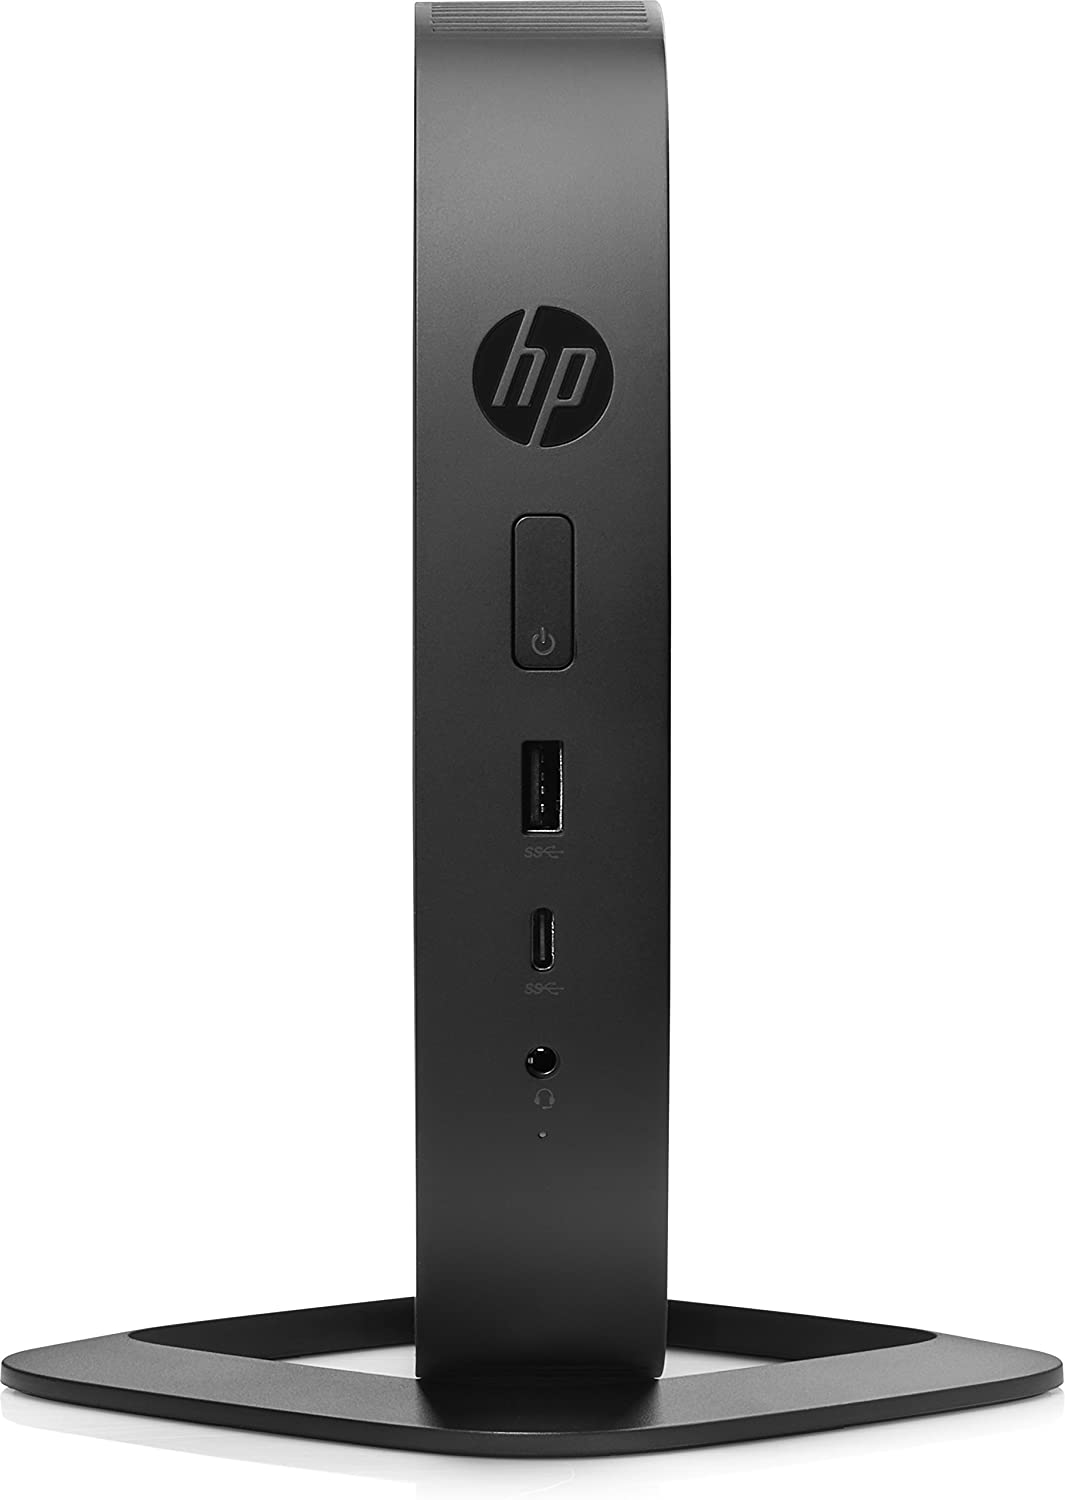 HP 2DH81AT#ABA T530, Thin Client, Tower, 4 GB Ram, 32 GB Flash, AMD Radeon R2, Black